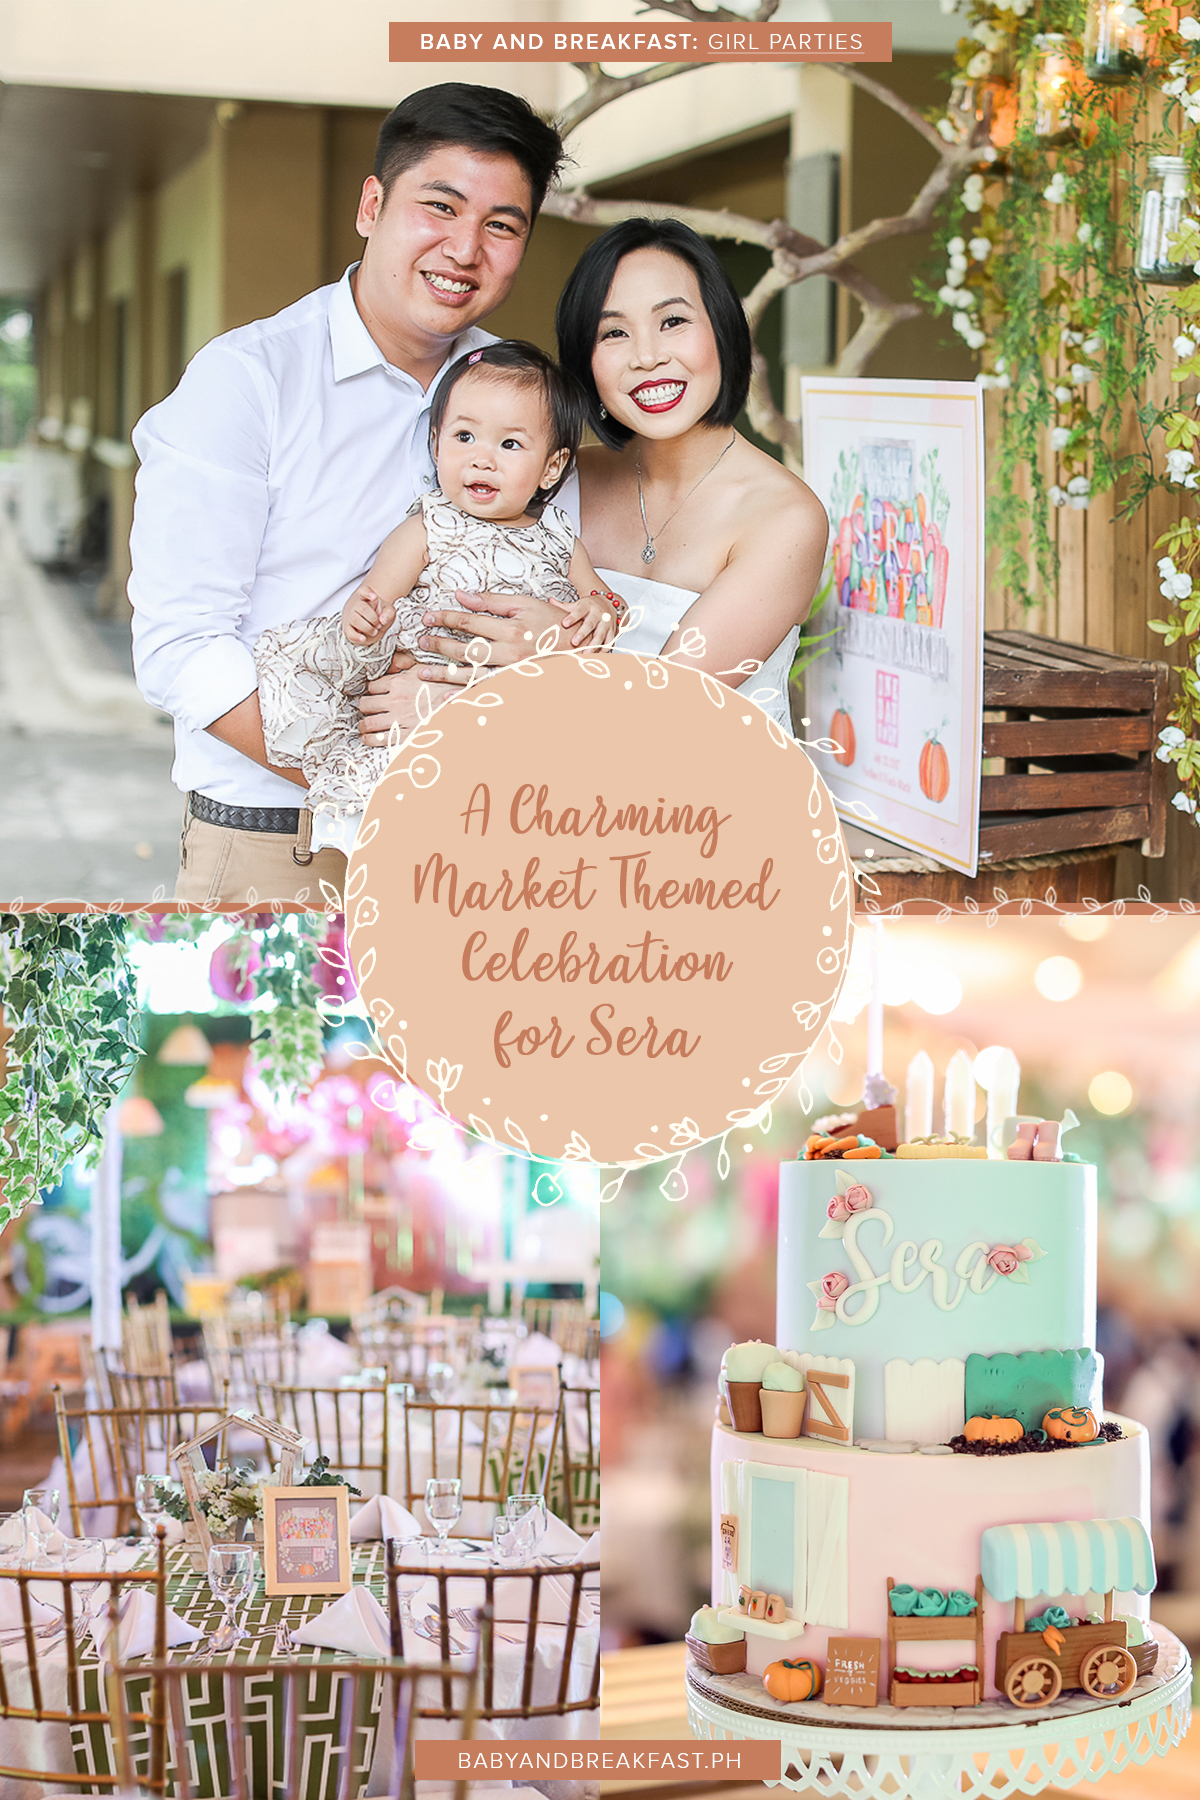 Baby and Breakfast: Girl Parties A Charming Market Themed Celebration for Sera